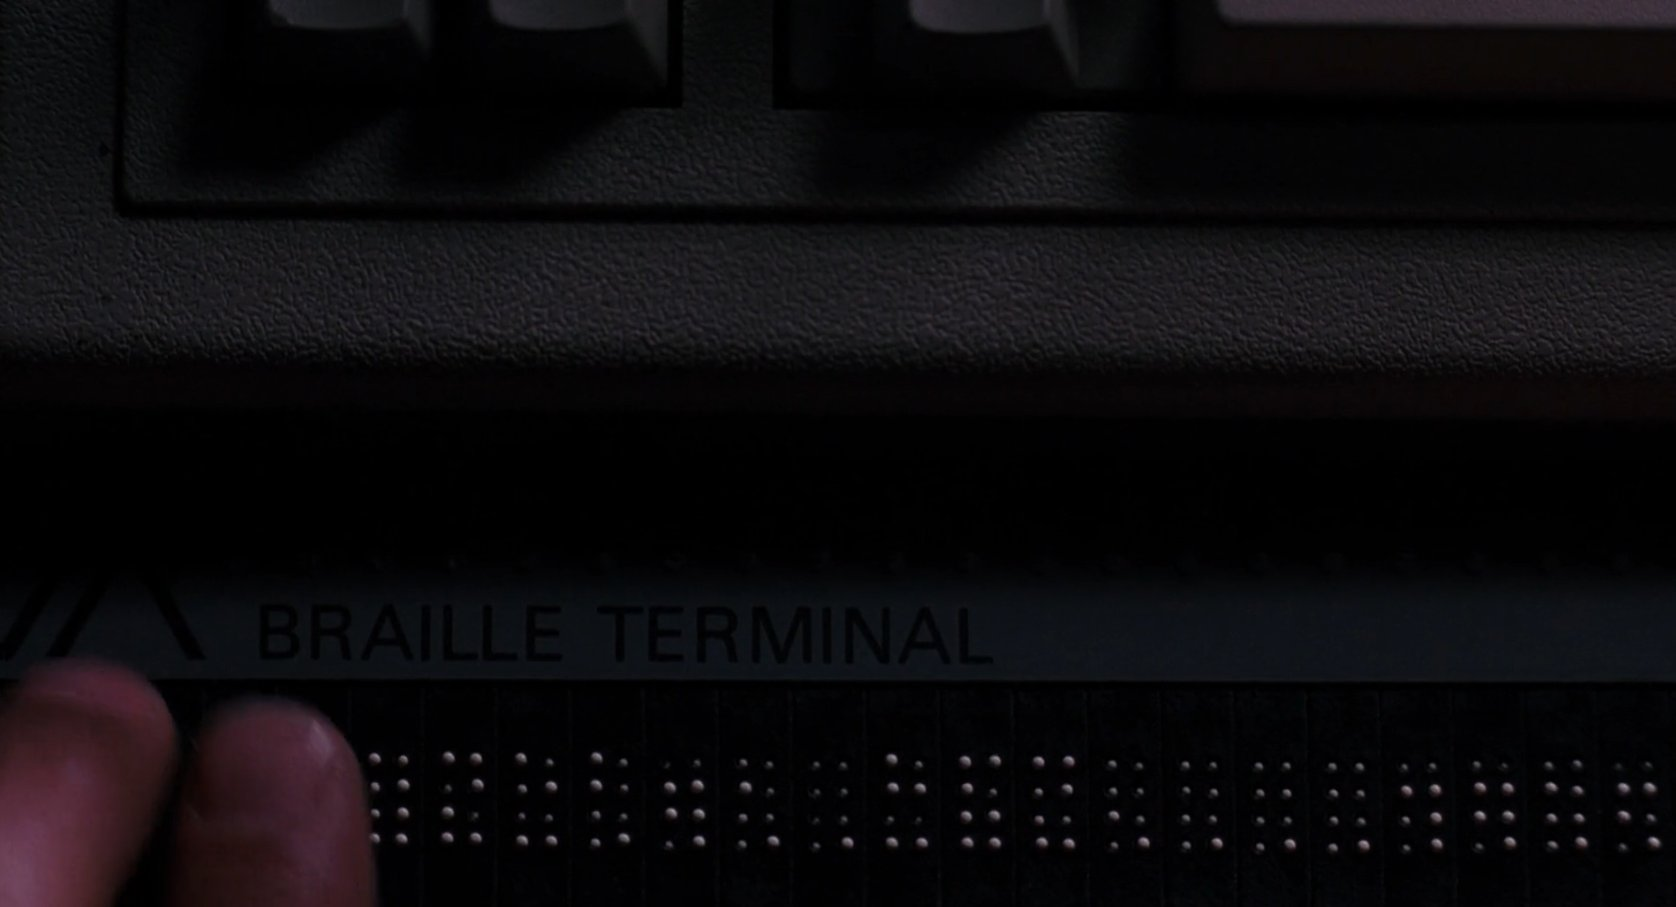 Whistler using a Braille terminal